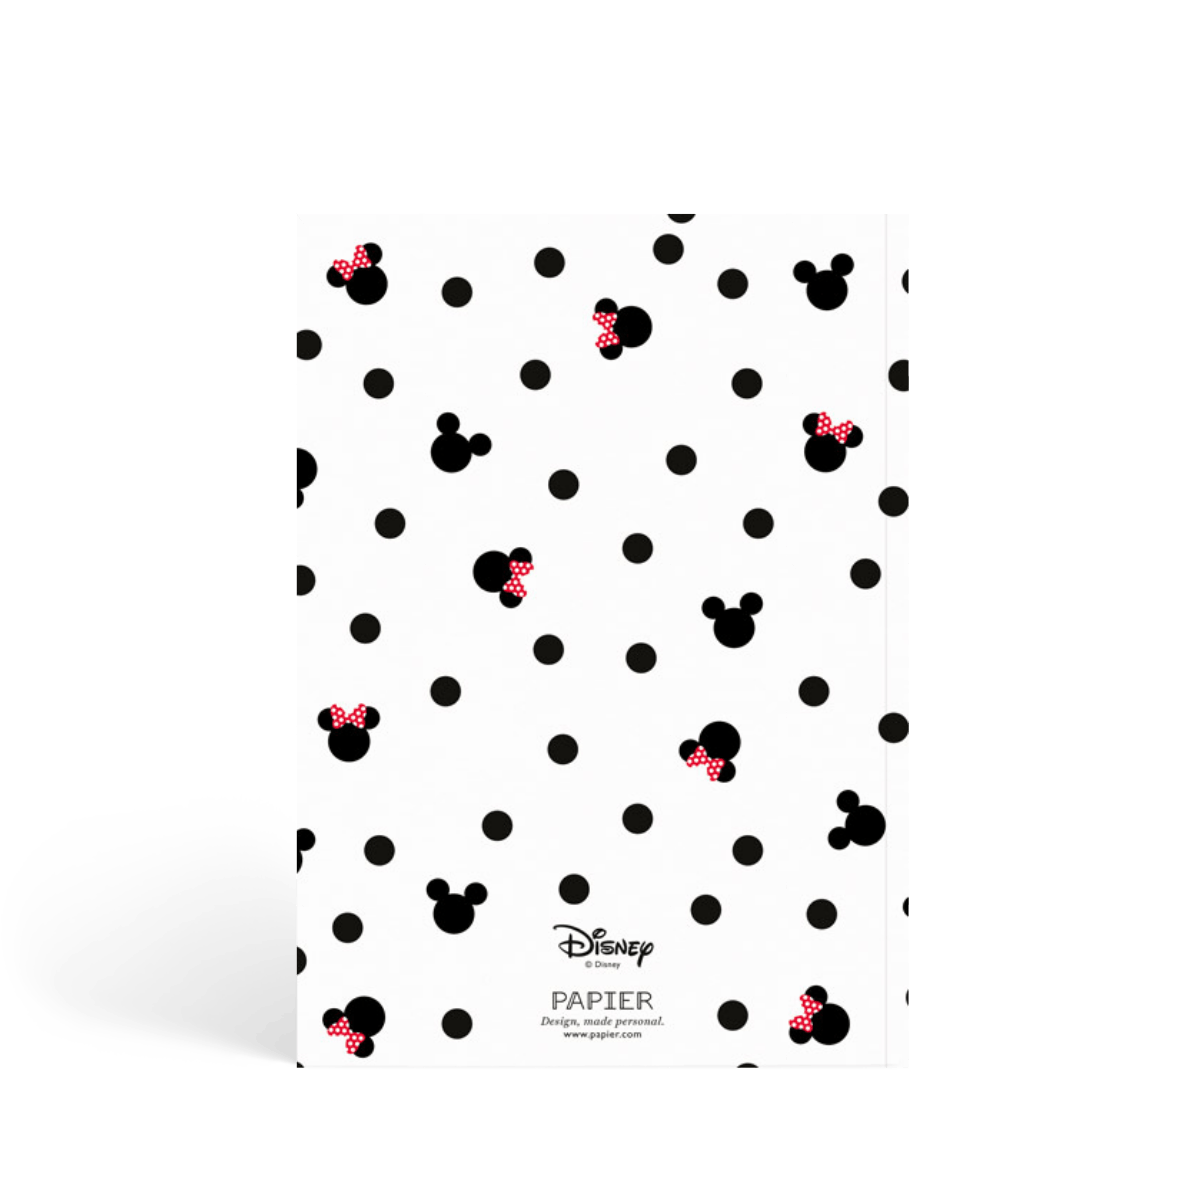 Https%3a%2f%2fwww.papier.com%2fproduct image%2f41961%2f5%2fmickey minnie mouse 10695 rueckseite 1532359817.png?ixlib=rb 1.1